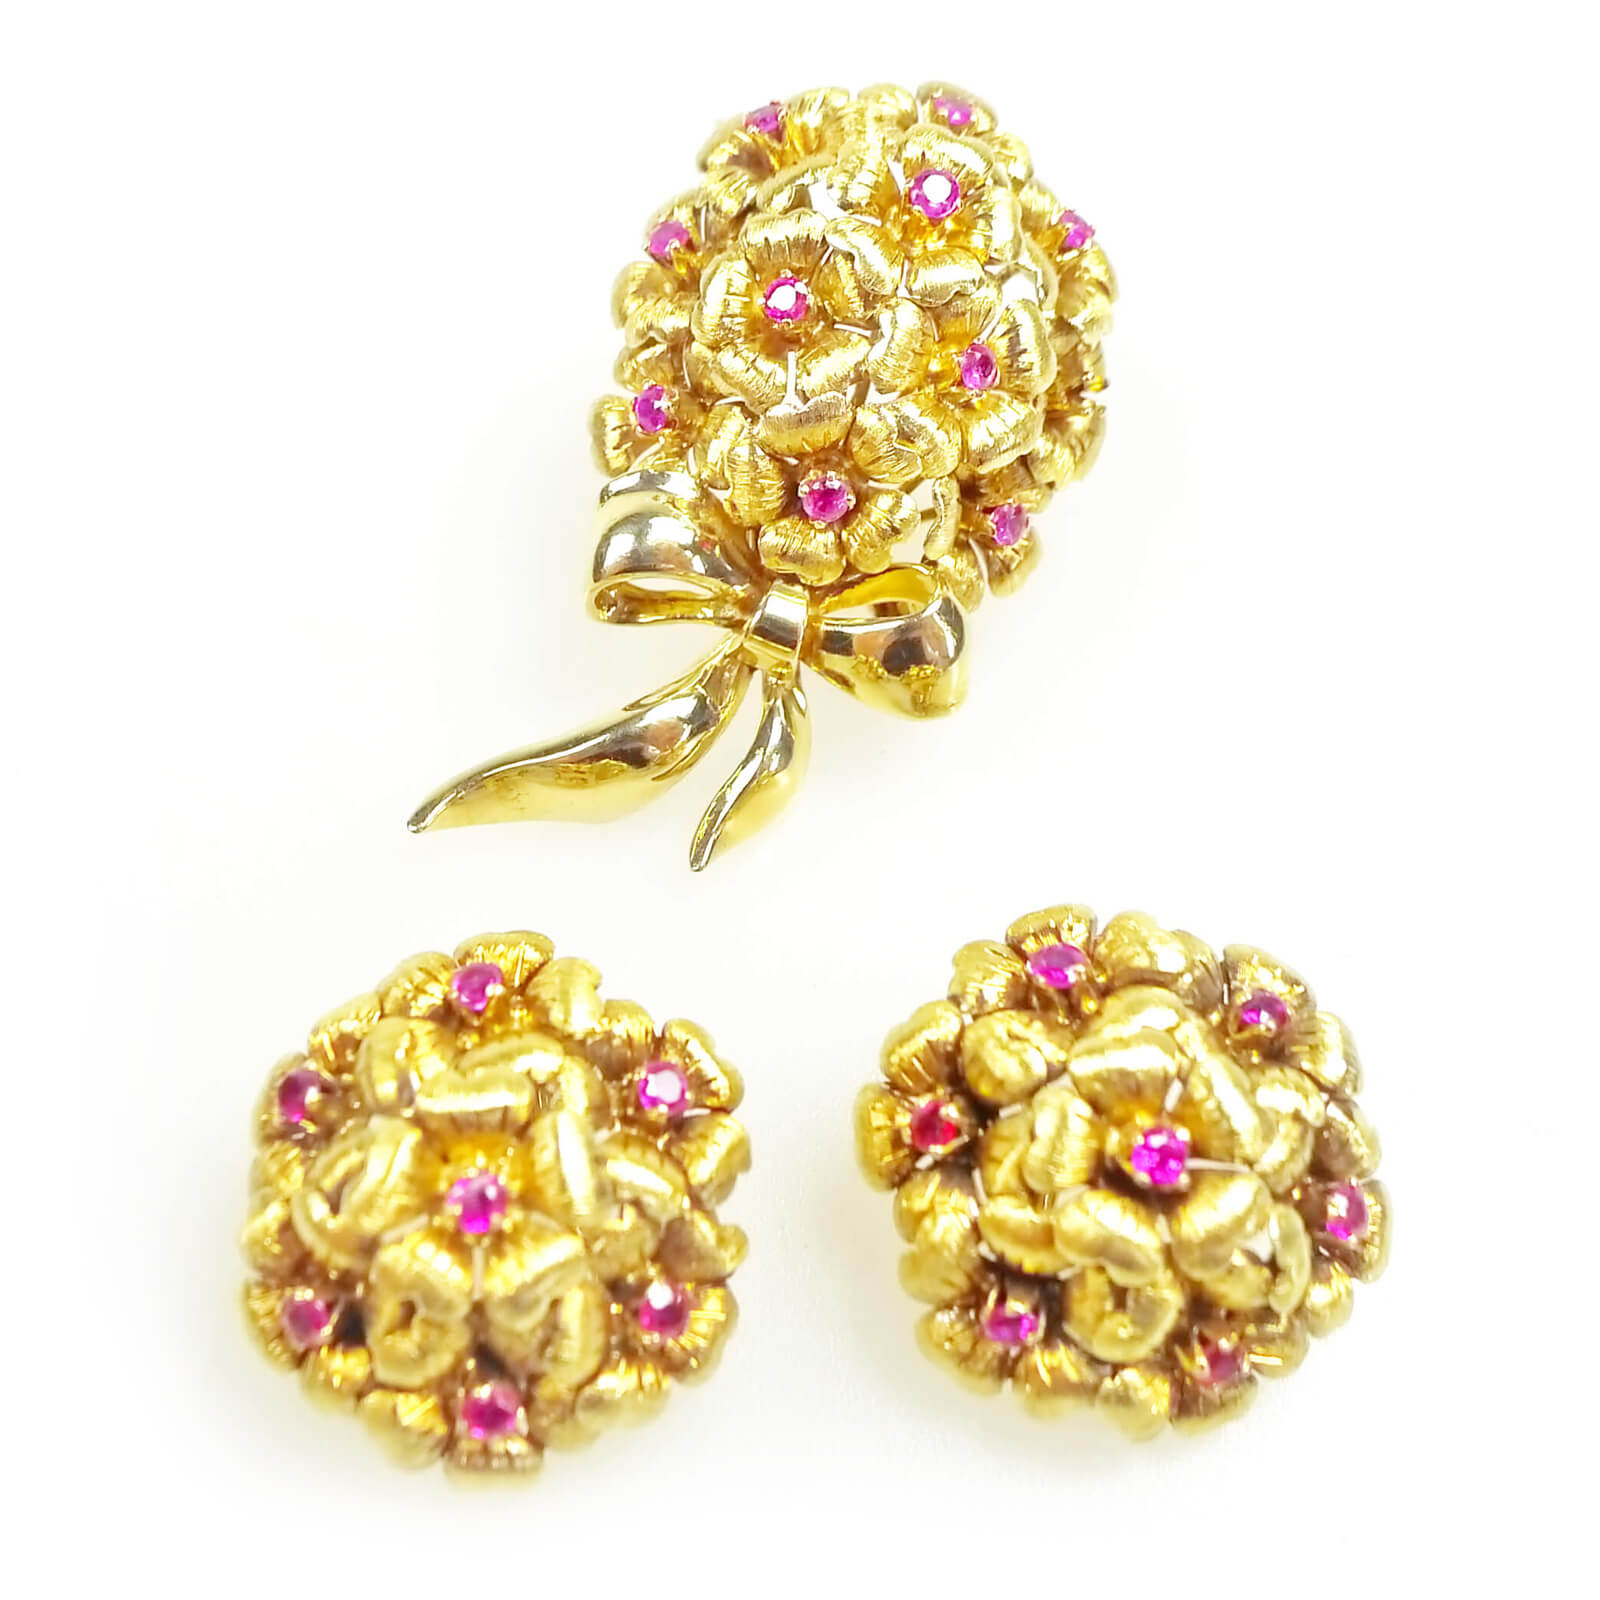 Tiffany 18k yellow gold ruby brooch earring suite complete